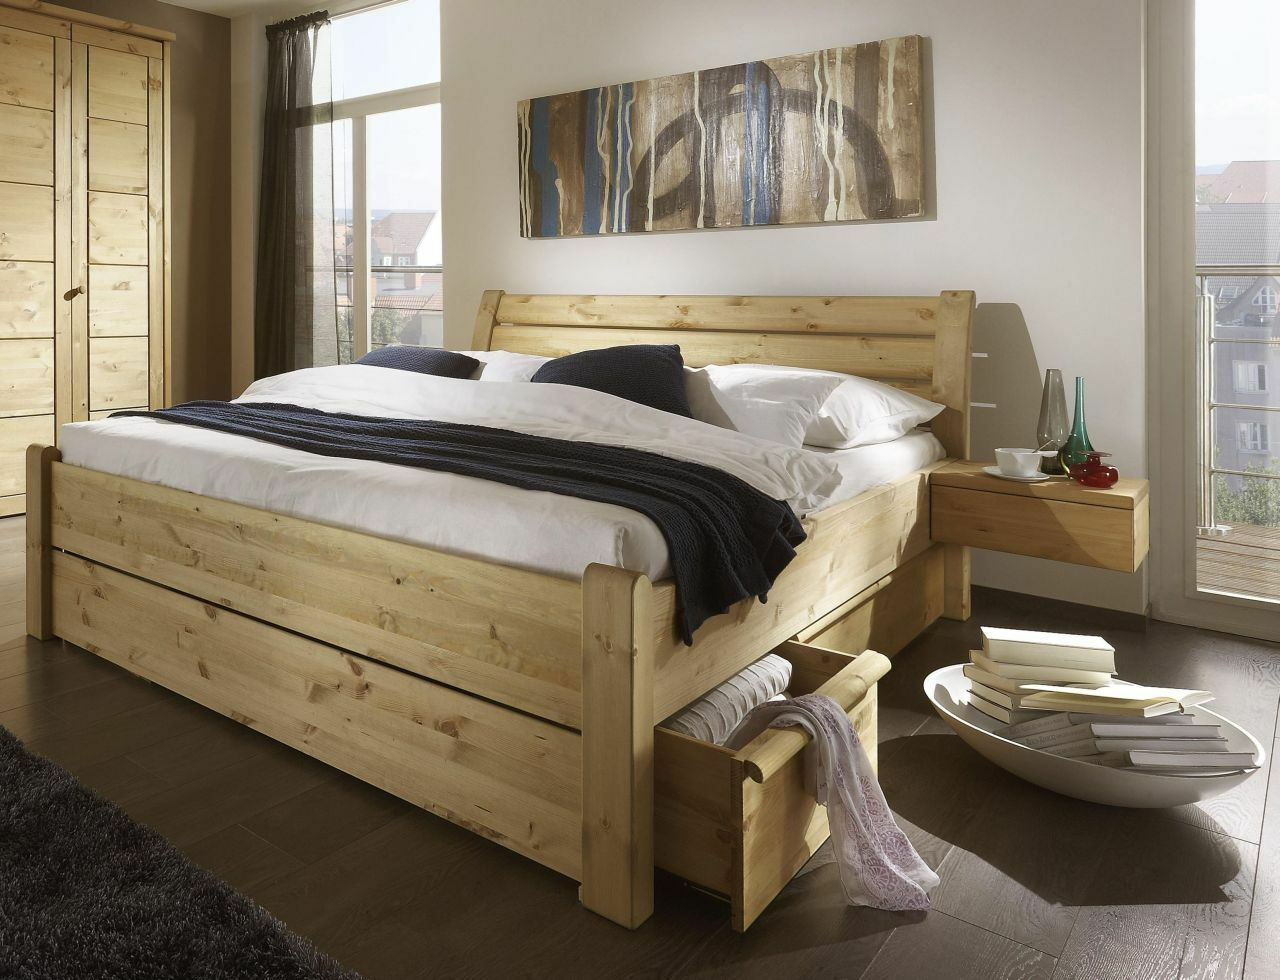 bettgestell doppelbett bettrahmen bett 180x200 kiefer massiv holz gelaugt ge lt eur 516 00. Black Bedroom Furniture Sets. Home Design Ideas